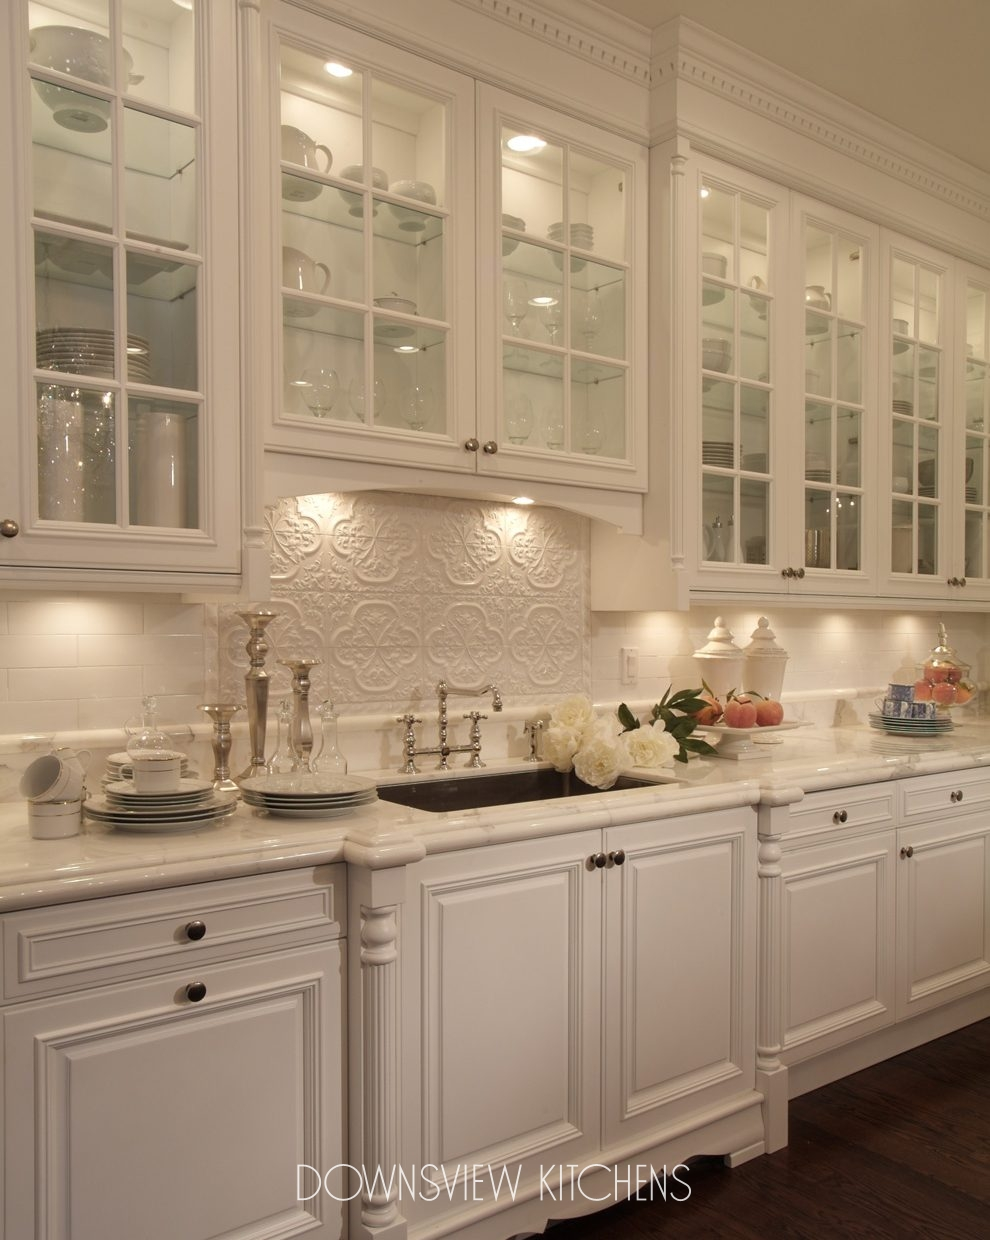 Custom Kitchen Cabinets Mississauga Traditional Beauty Downsview Kitchens And Fine Custom Cabinetry